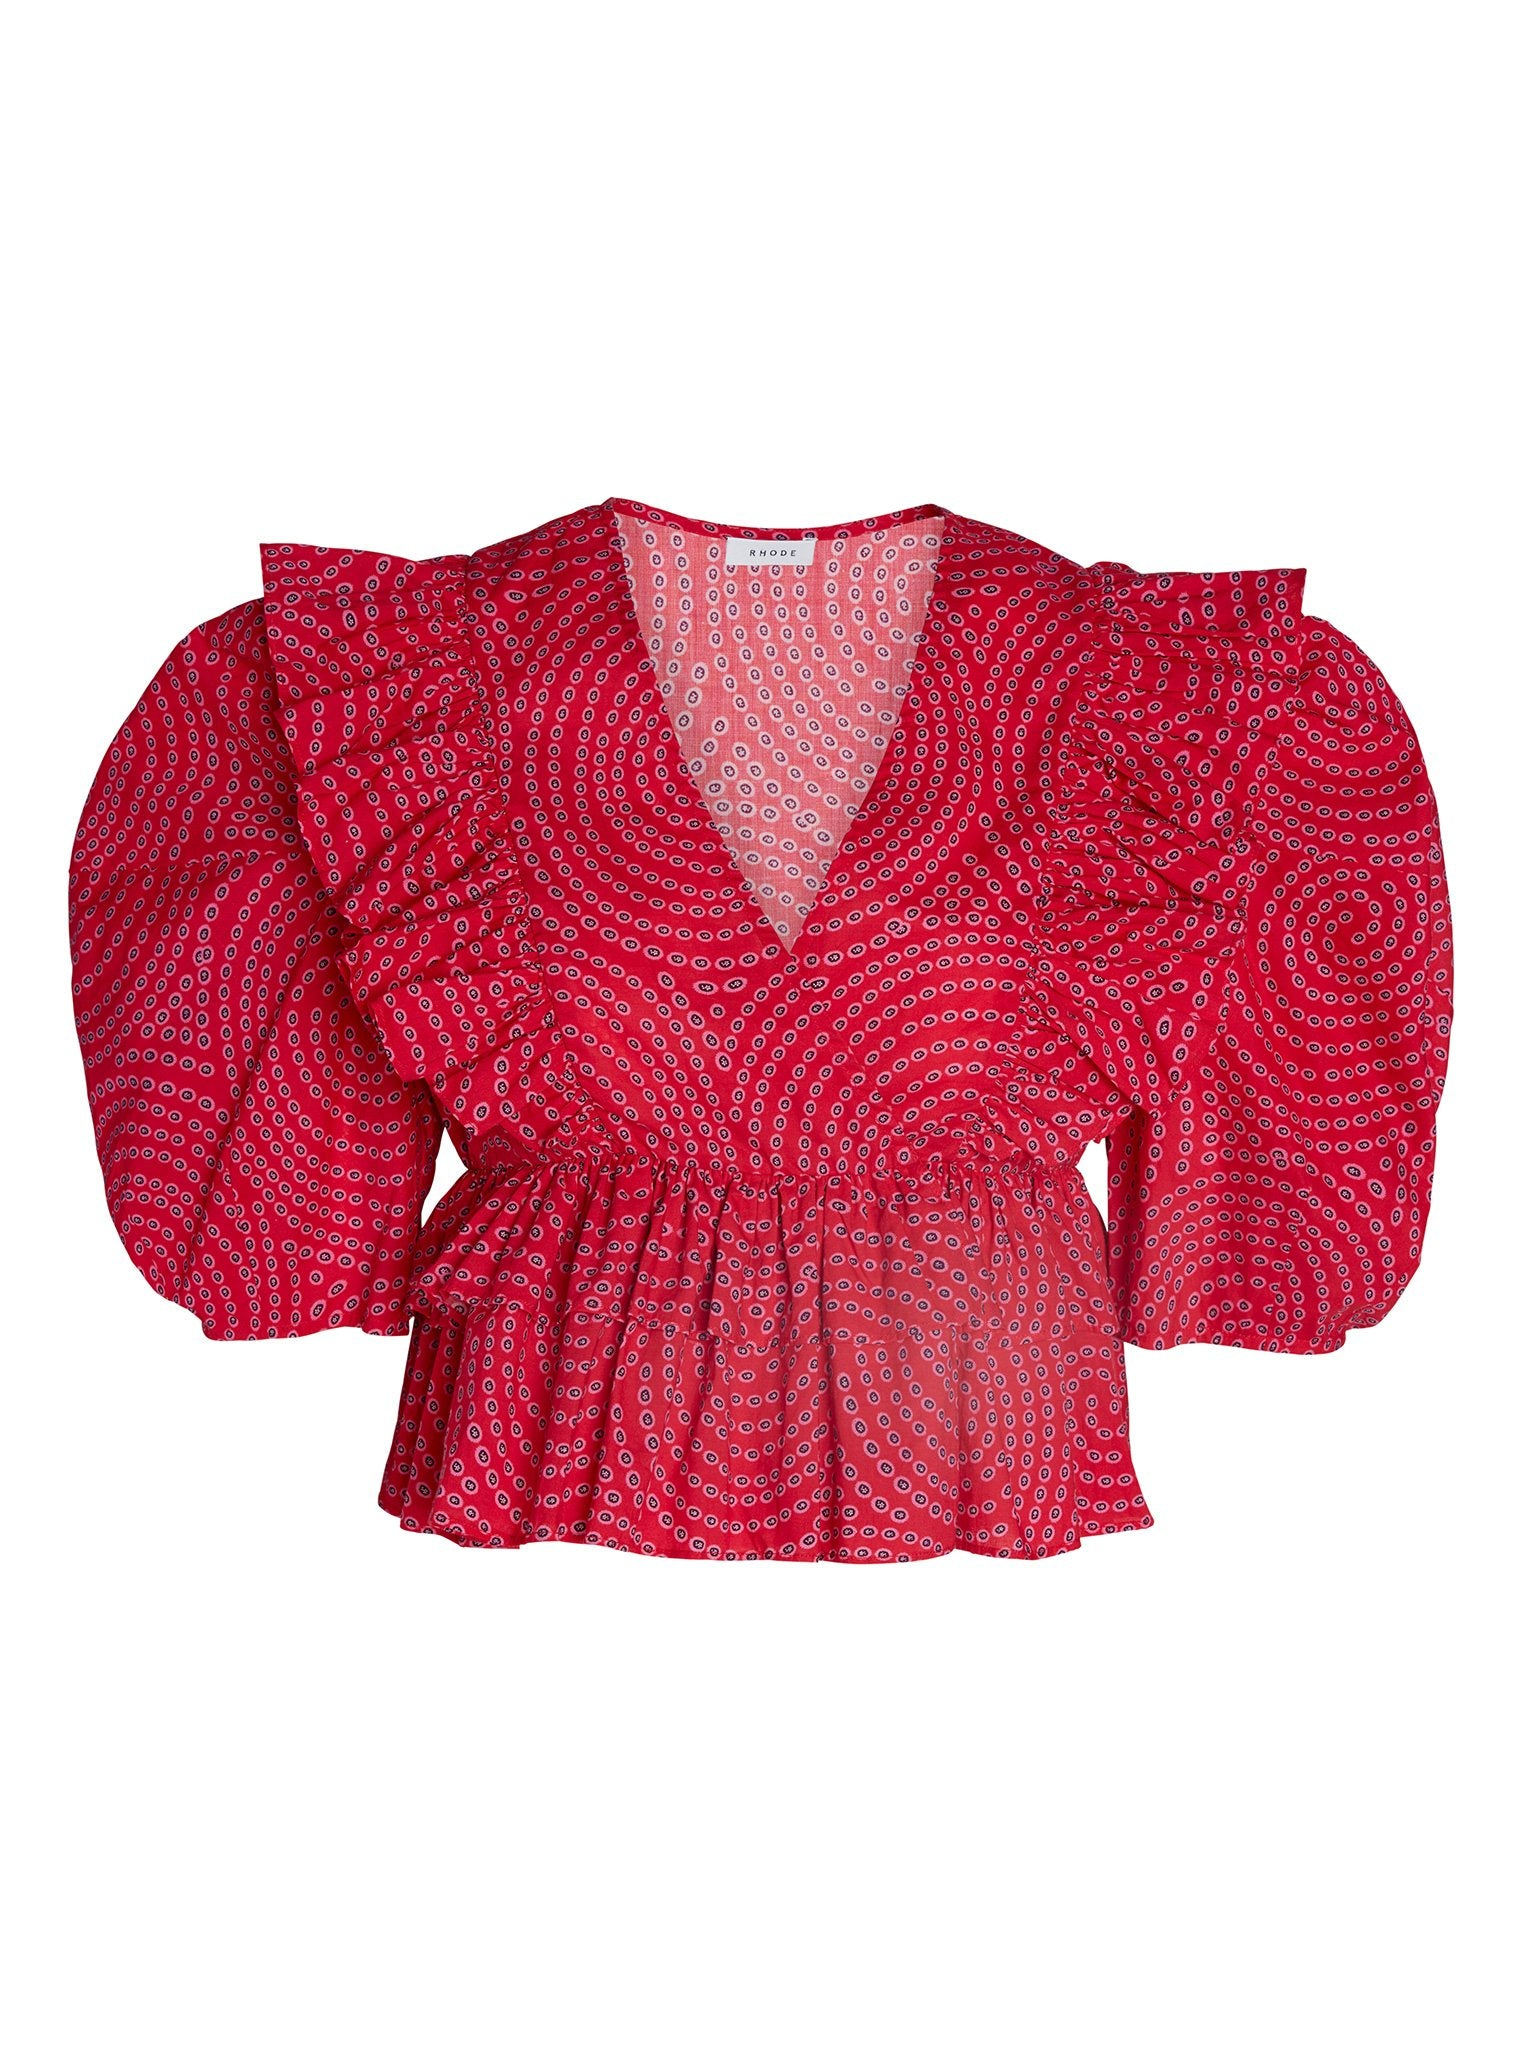 Elodie Top | Red Trail